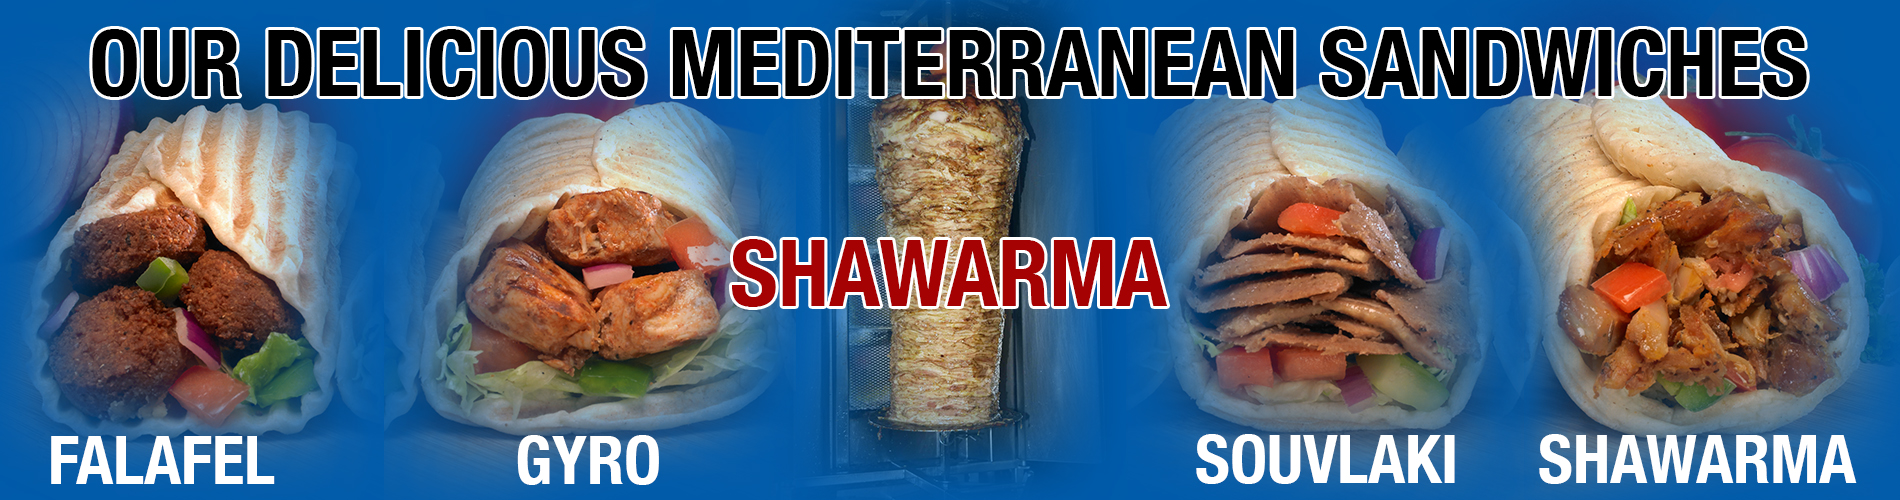 WEB SHAWARMA FINAL